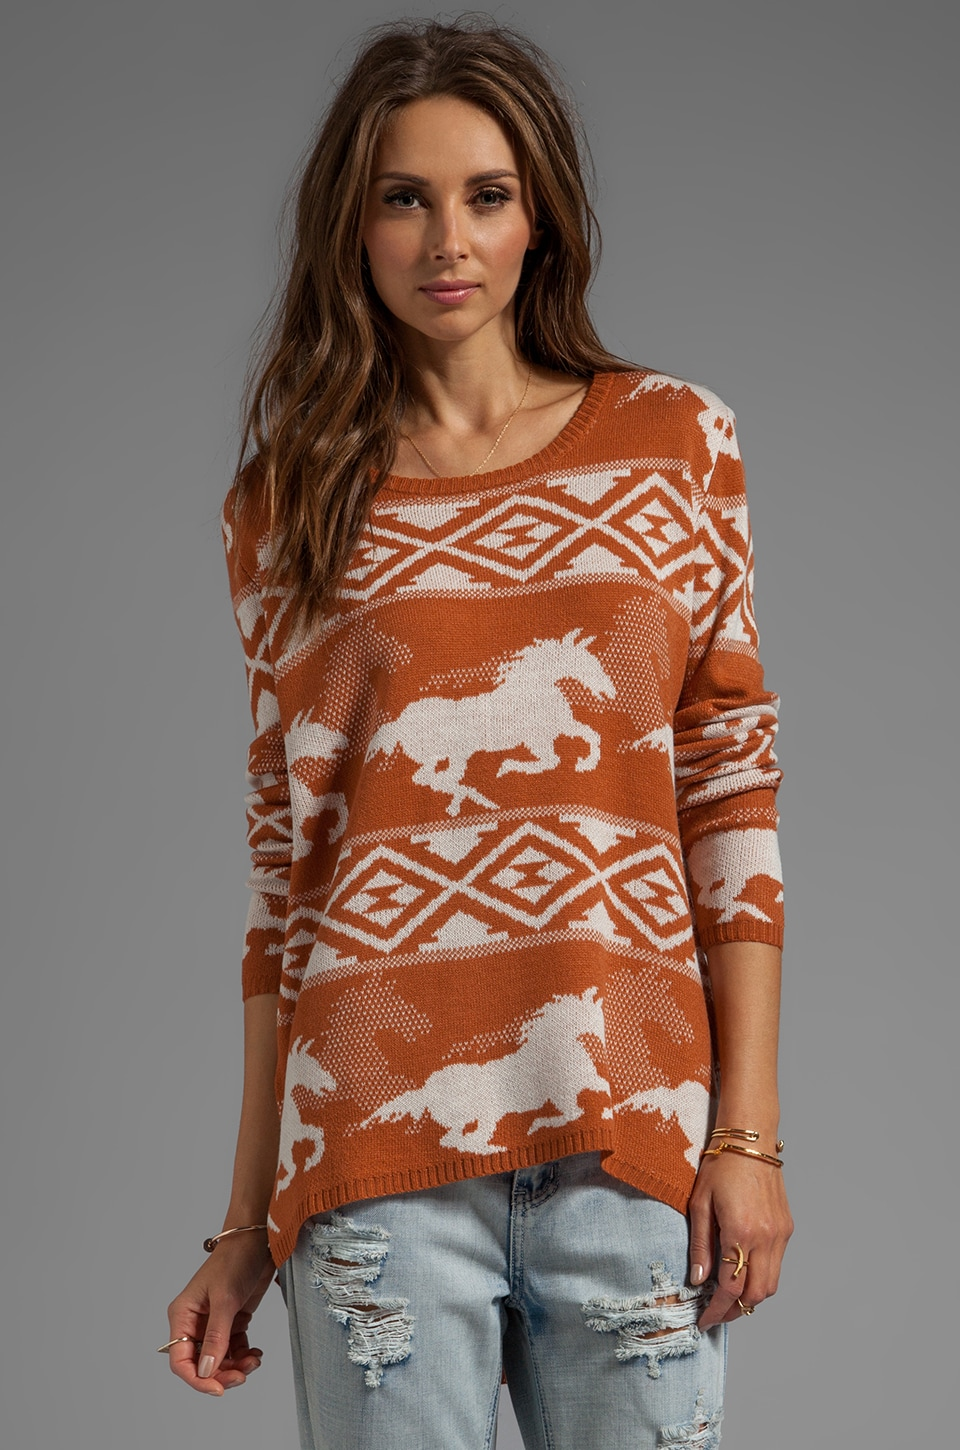 RVCA Buddy Knit Pullover Sweater with Wild Horses Jacquard Artwork in Amber